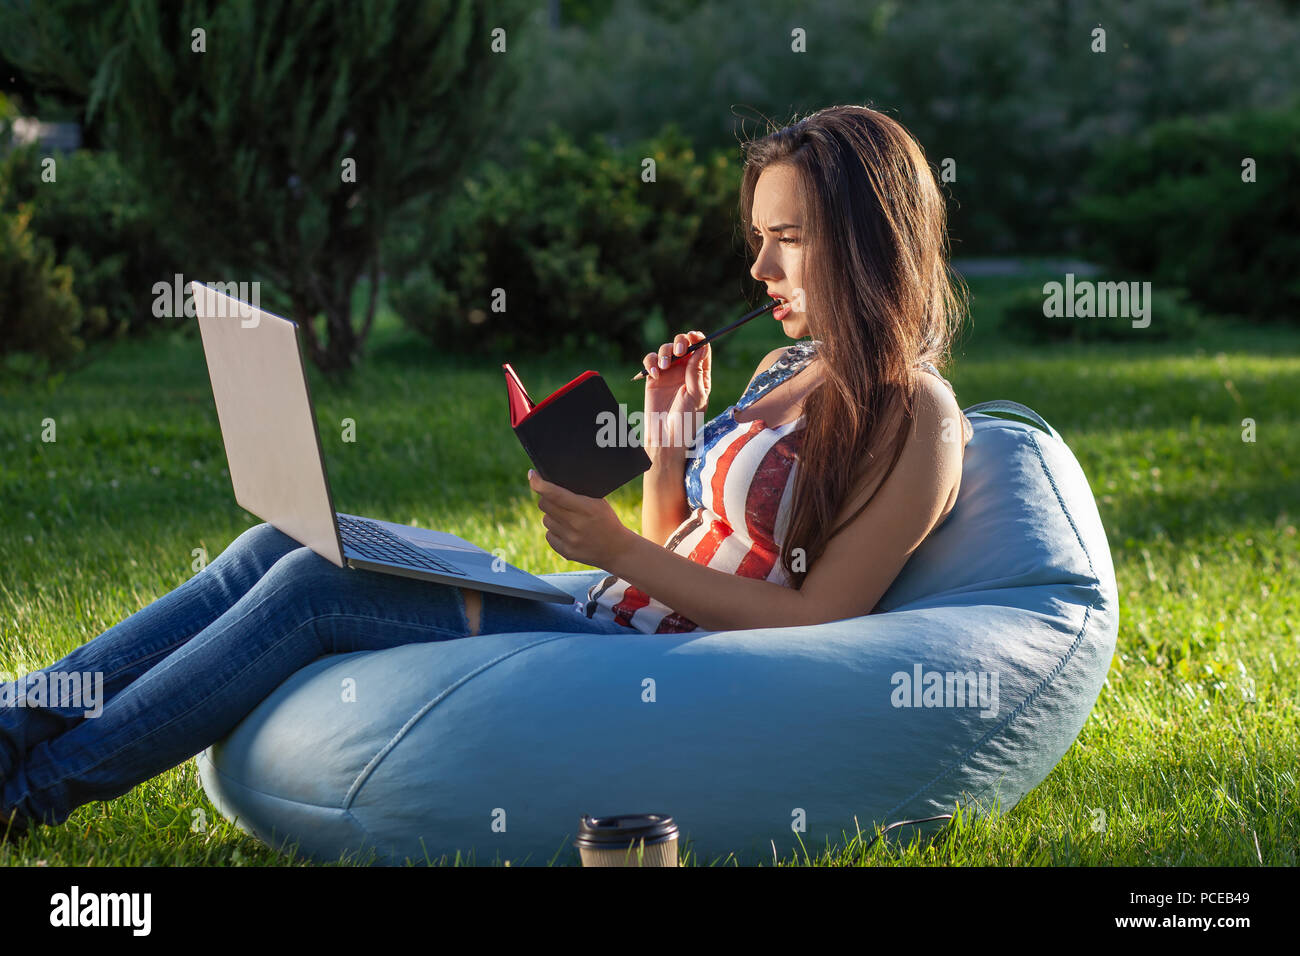 Young cute girl with laptop, sit on bean bag in garden or park, on green grass. Modern lifestyle concept - Stock Image